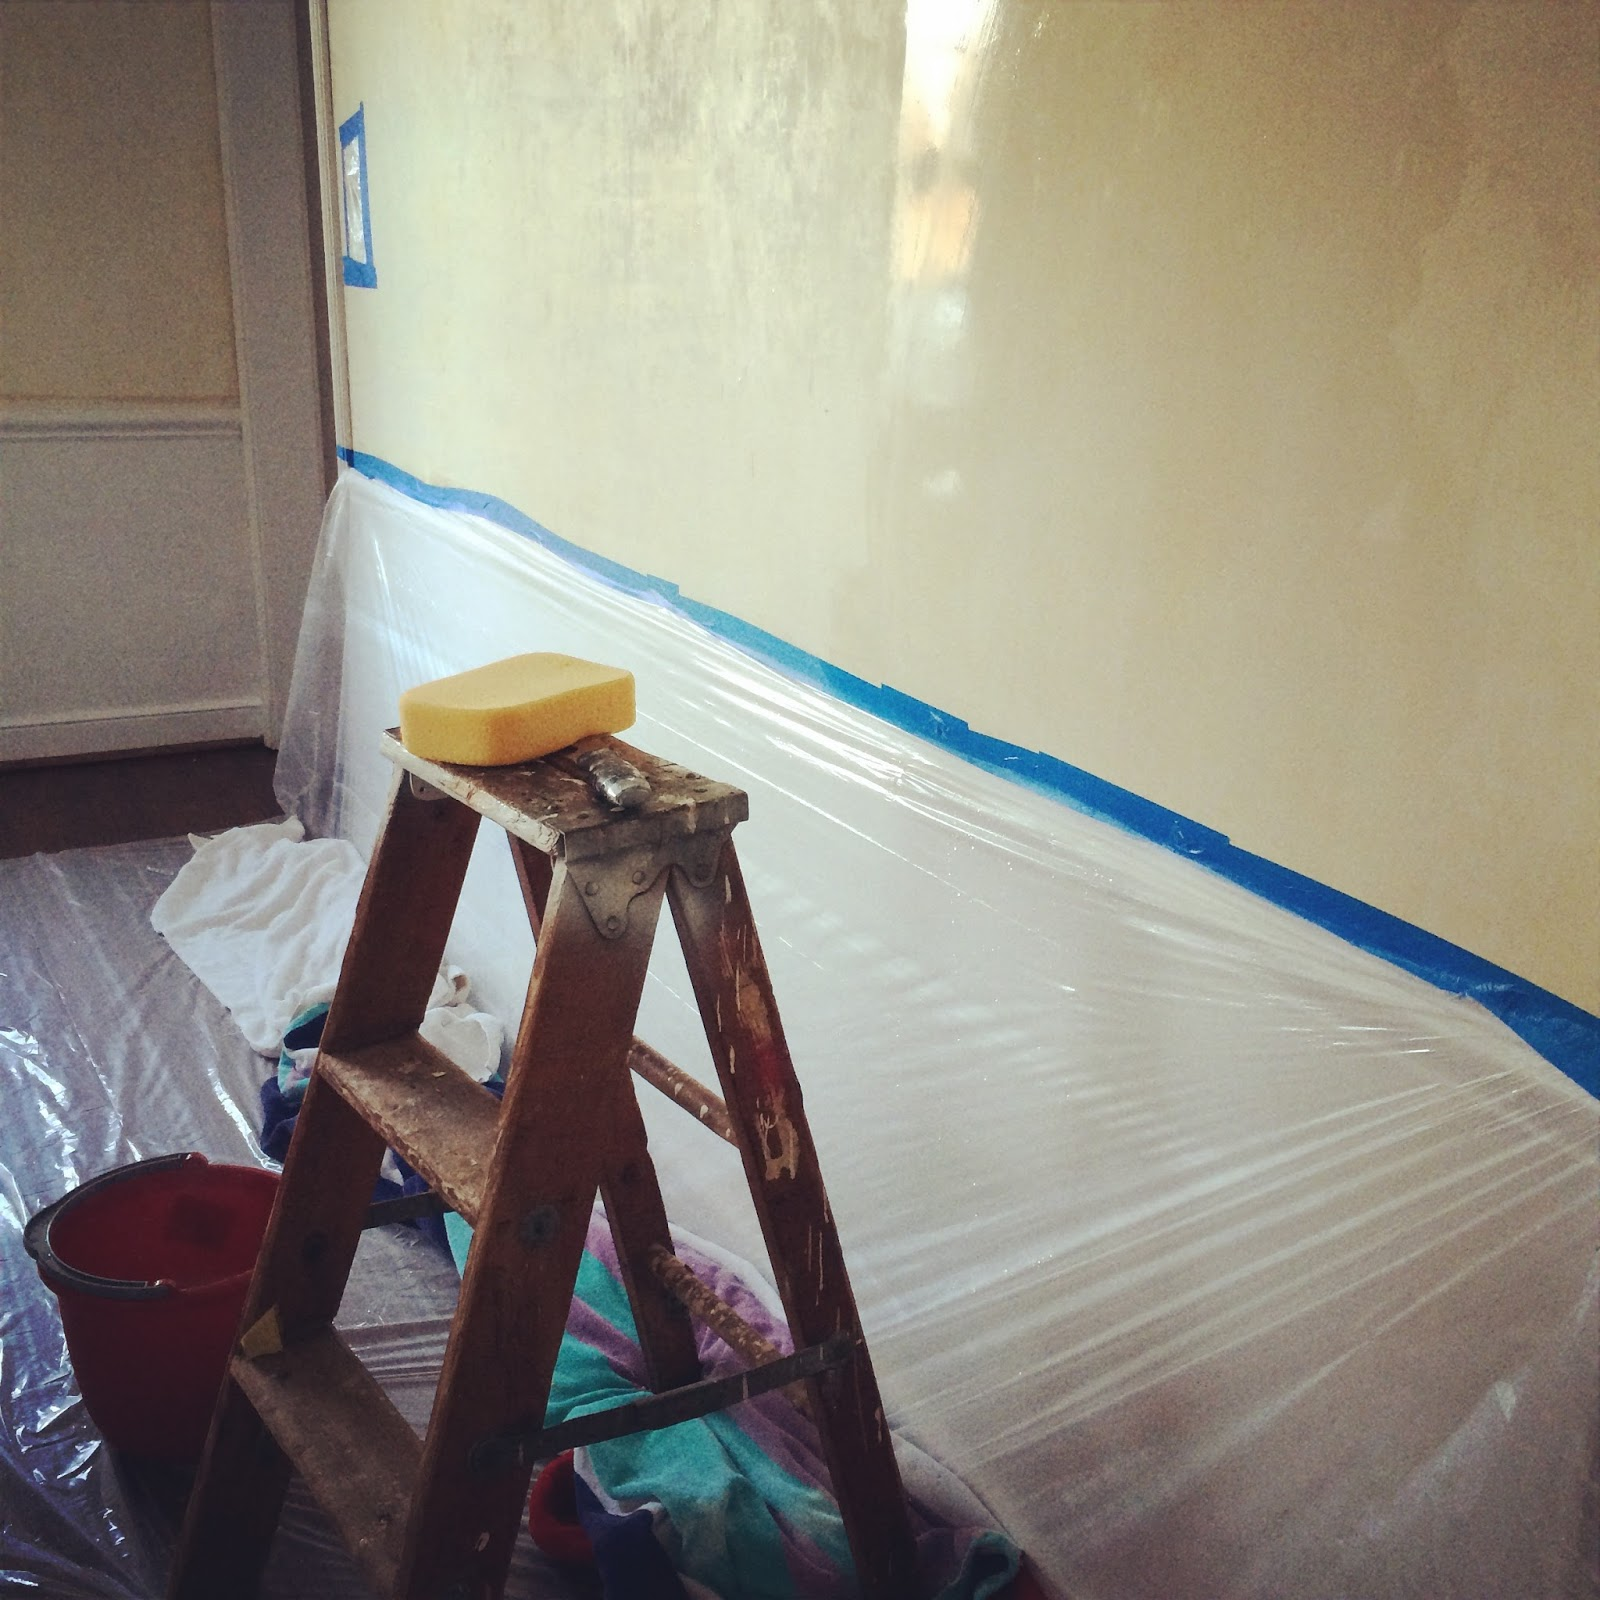 how do you remove old wallpaper glue from walls